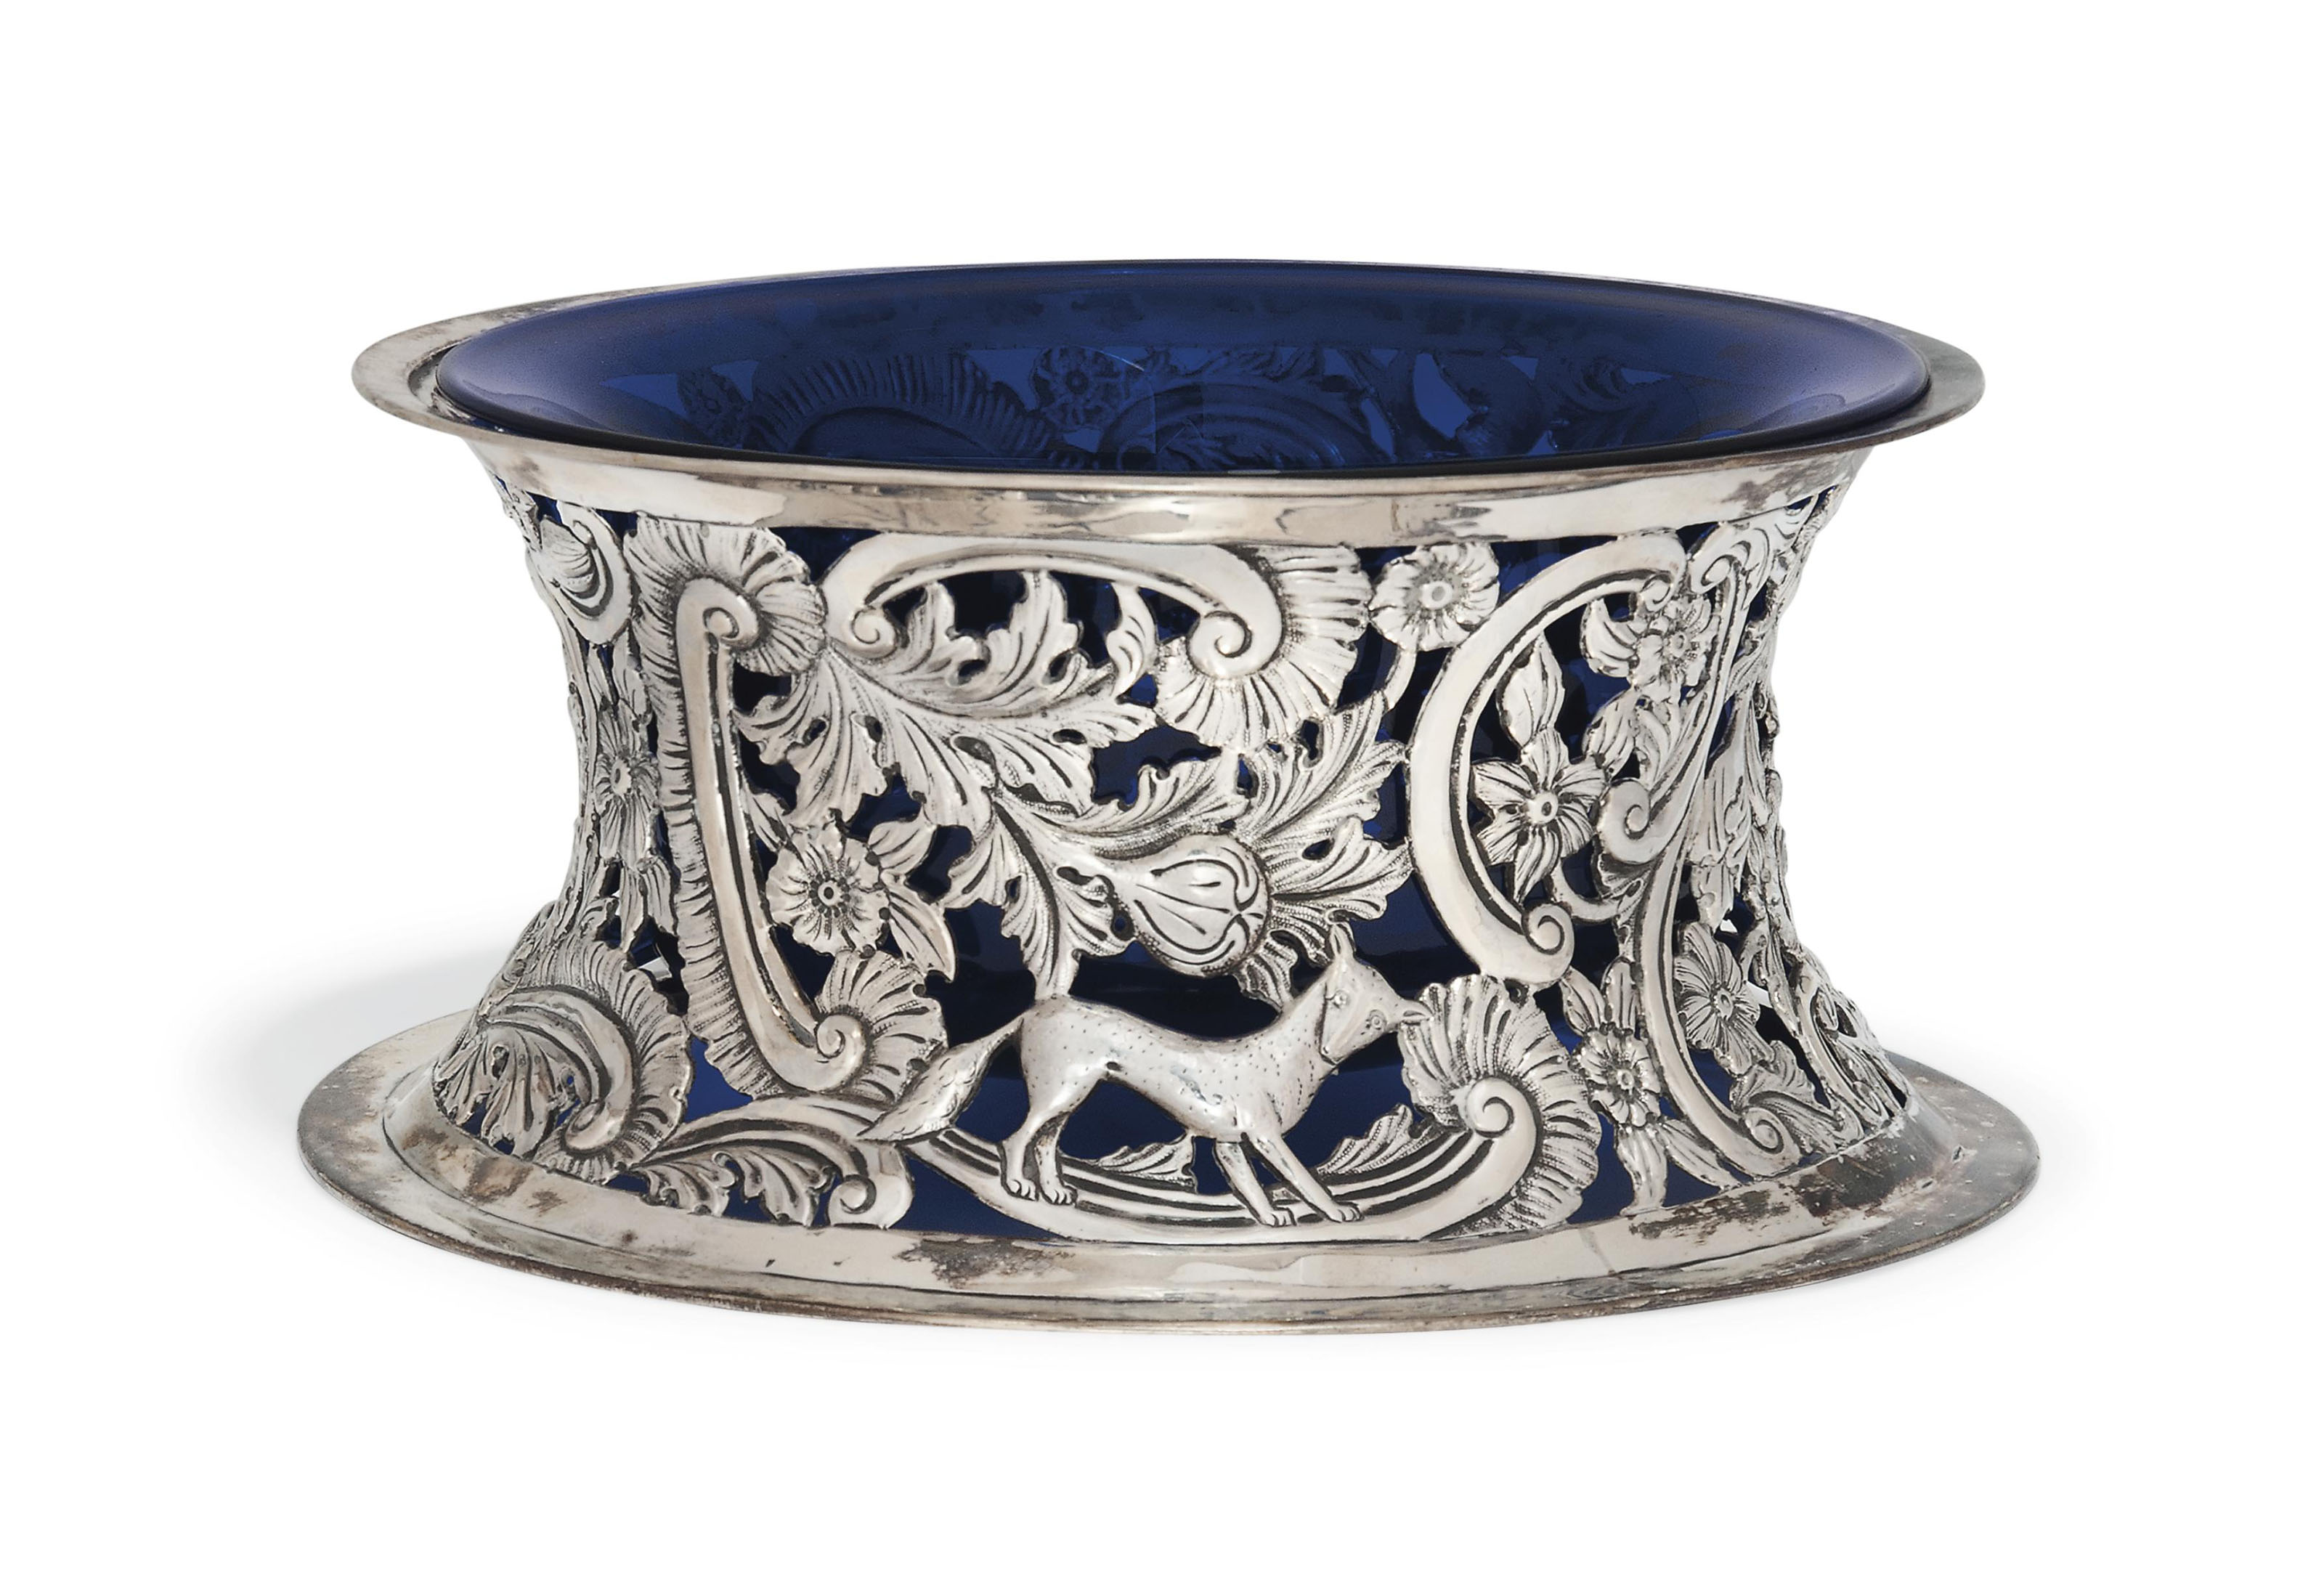 A LATE VICTORIAN SILVER DISH-RING IN THE 18TH CENTURY IRISH STYLE